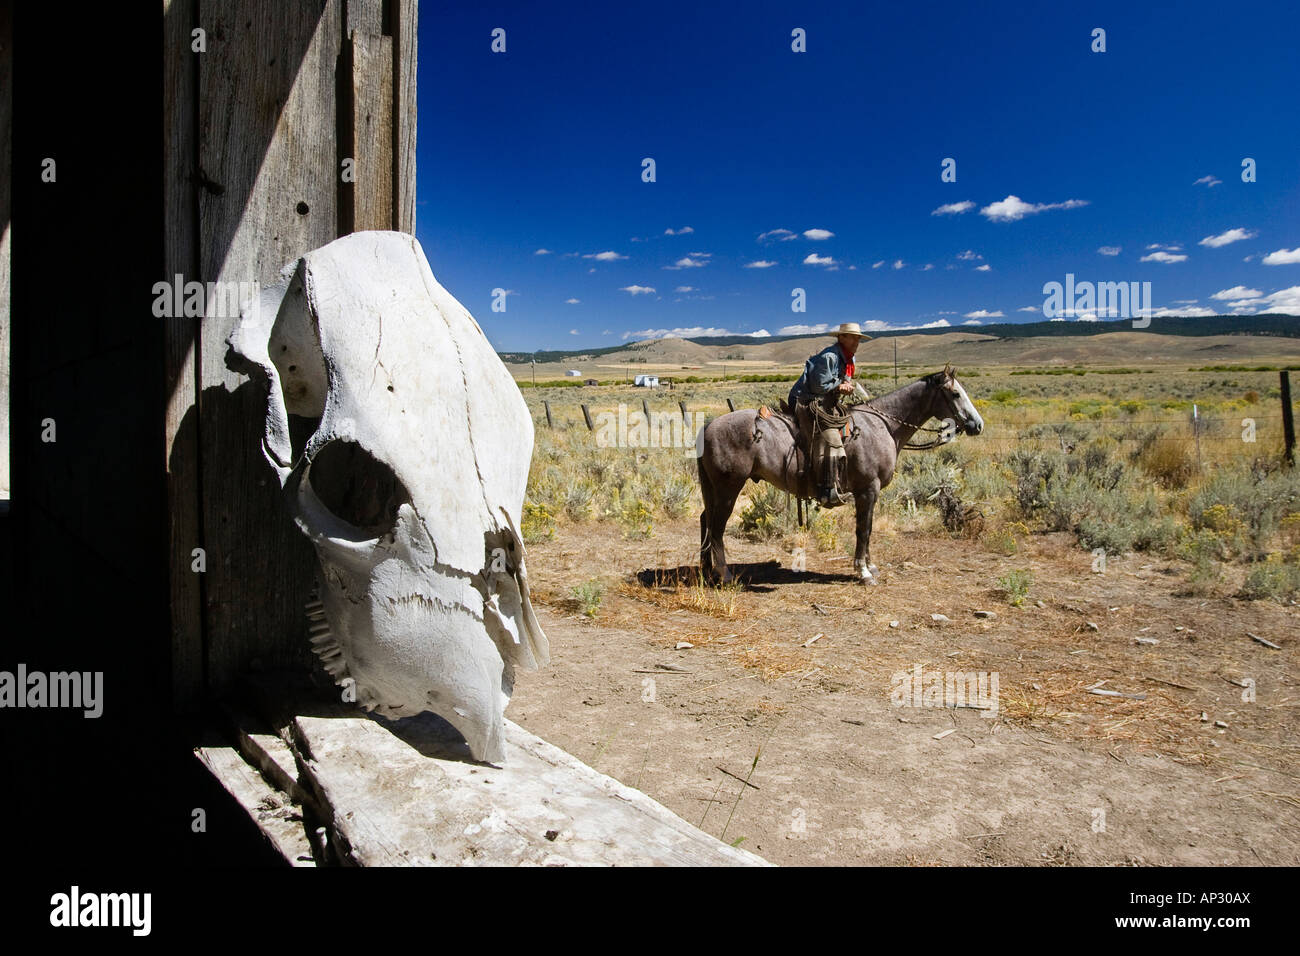 Cowboy with horse at barn, wildwest, Oregon, USA Stock Photo